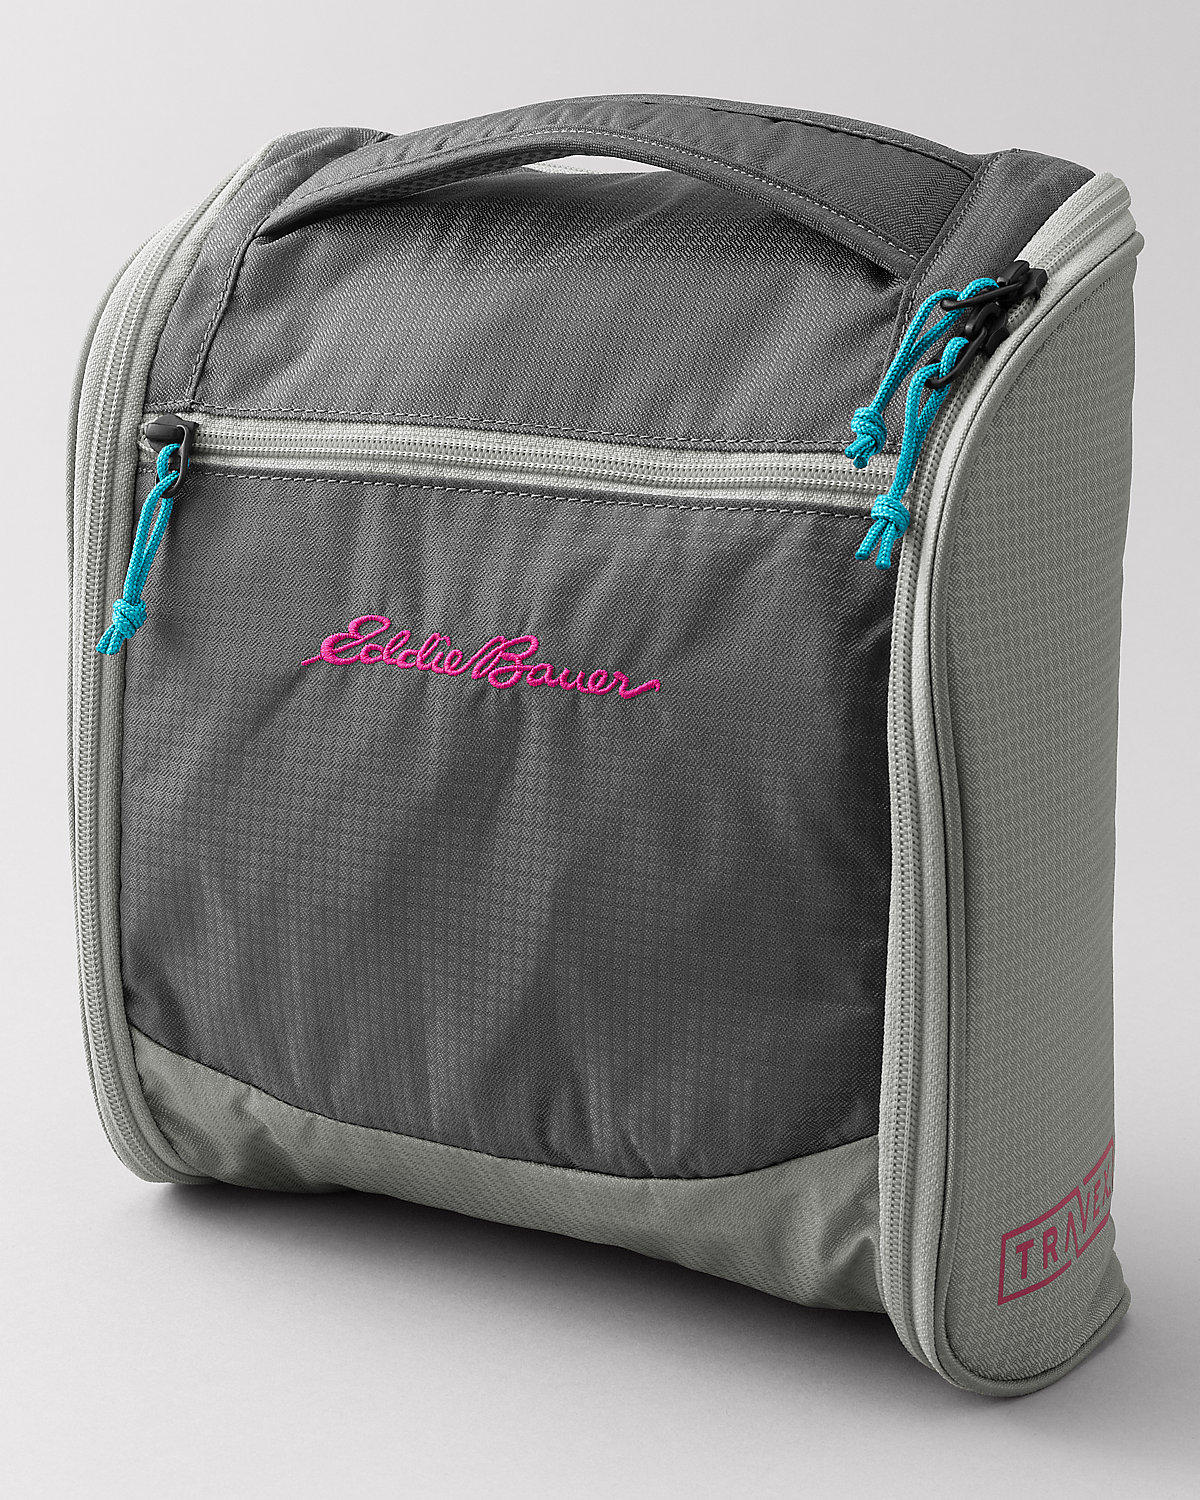 Eddie Bauer Travex Expedition Hanging Kit Bag